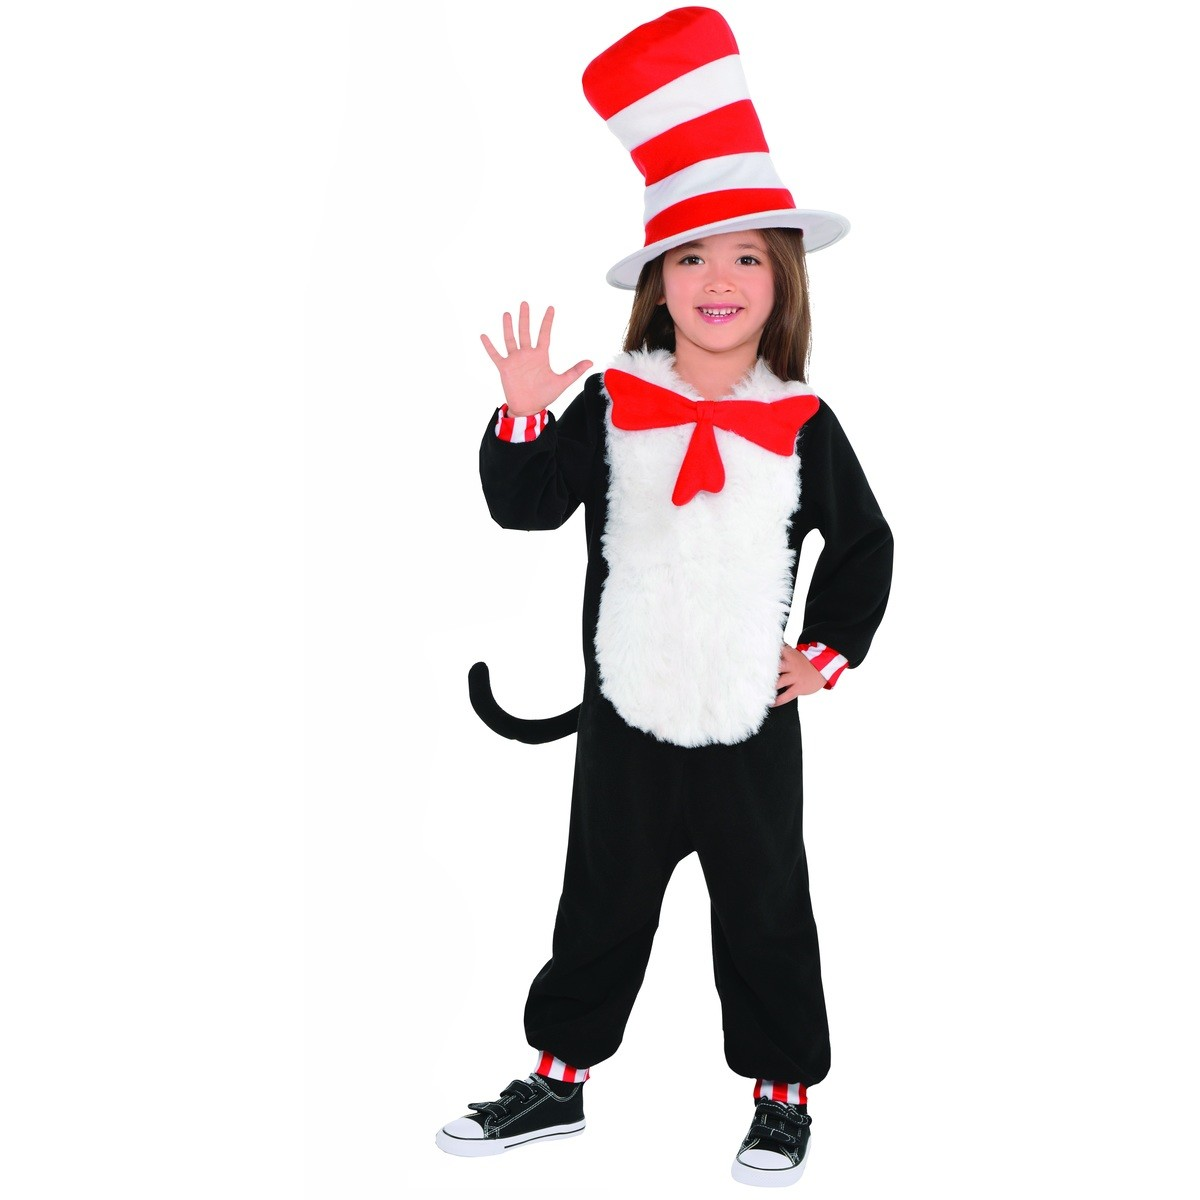 Cat in the Hat Costume Review